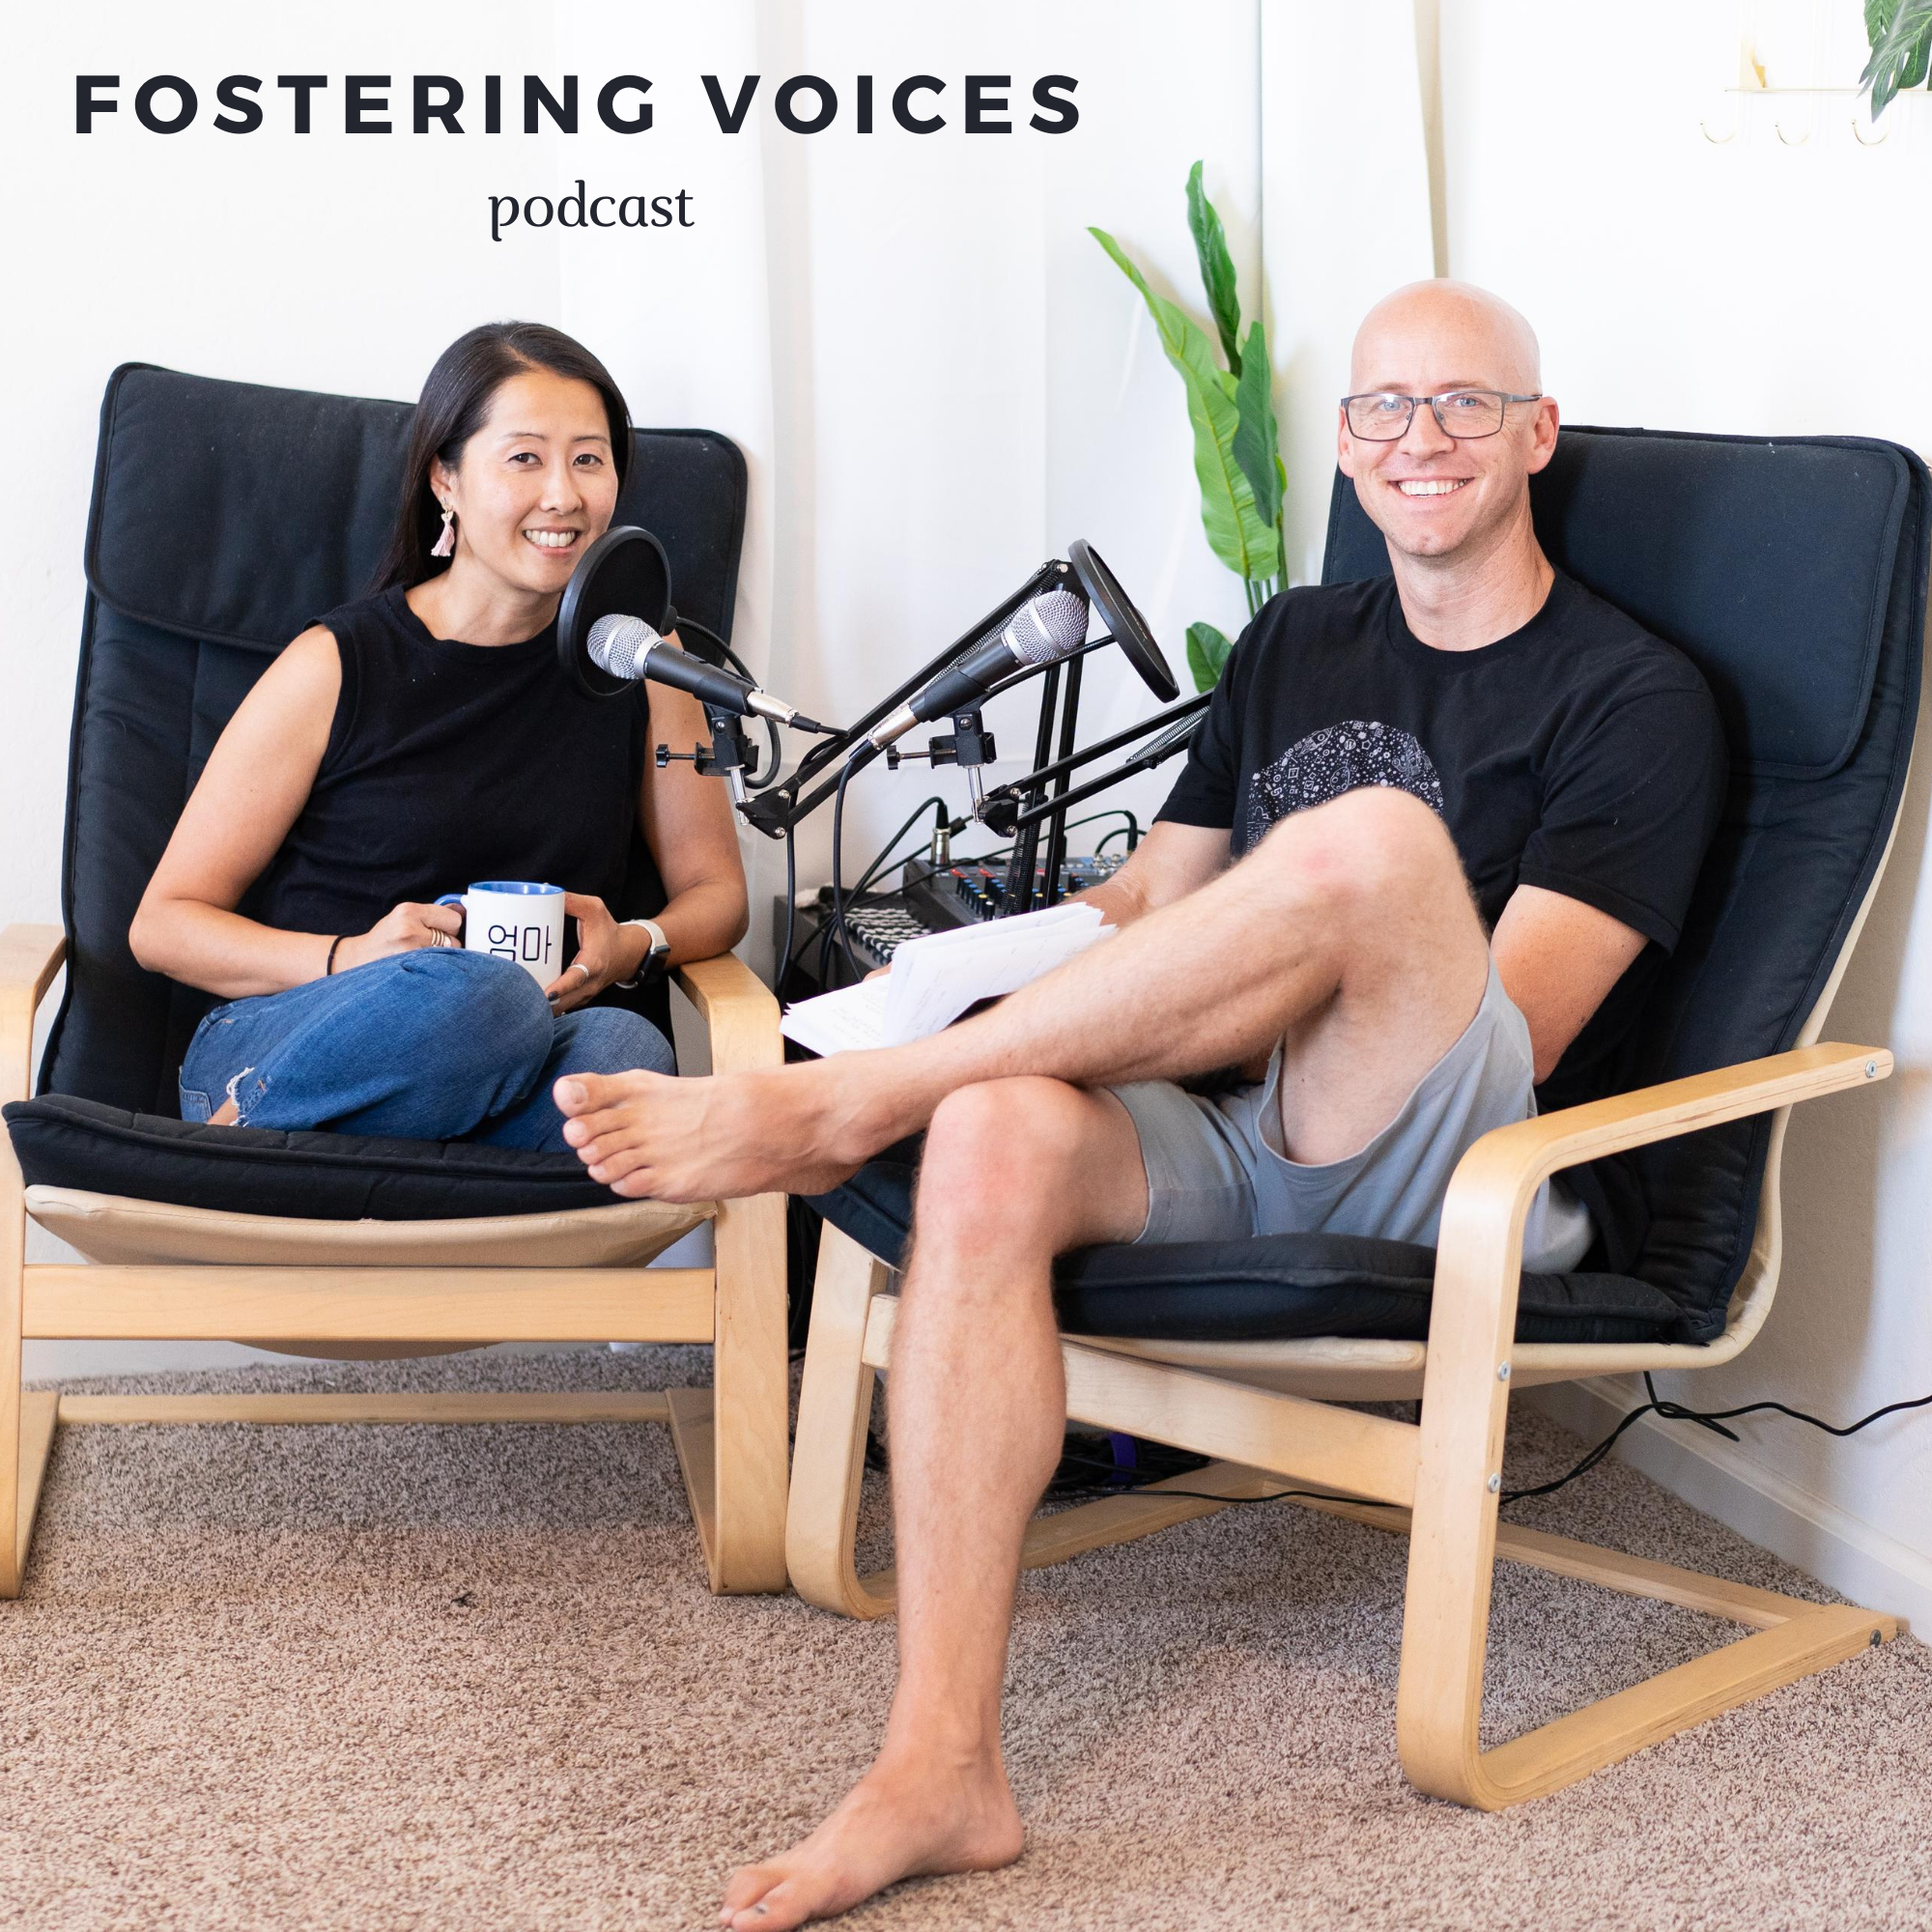 Episode 92: Safe House for Foster and Adoptive Families show art